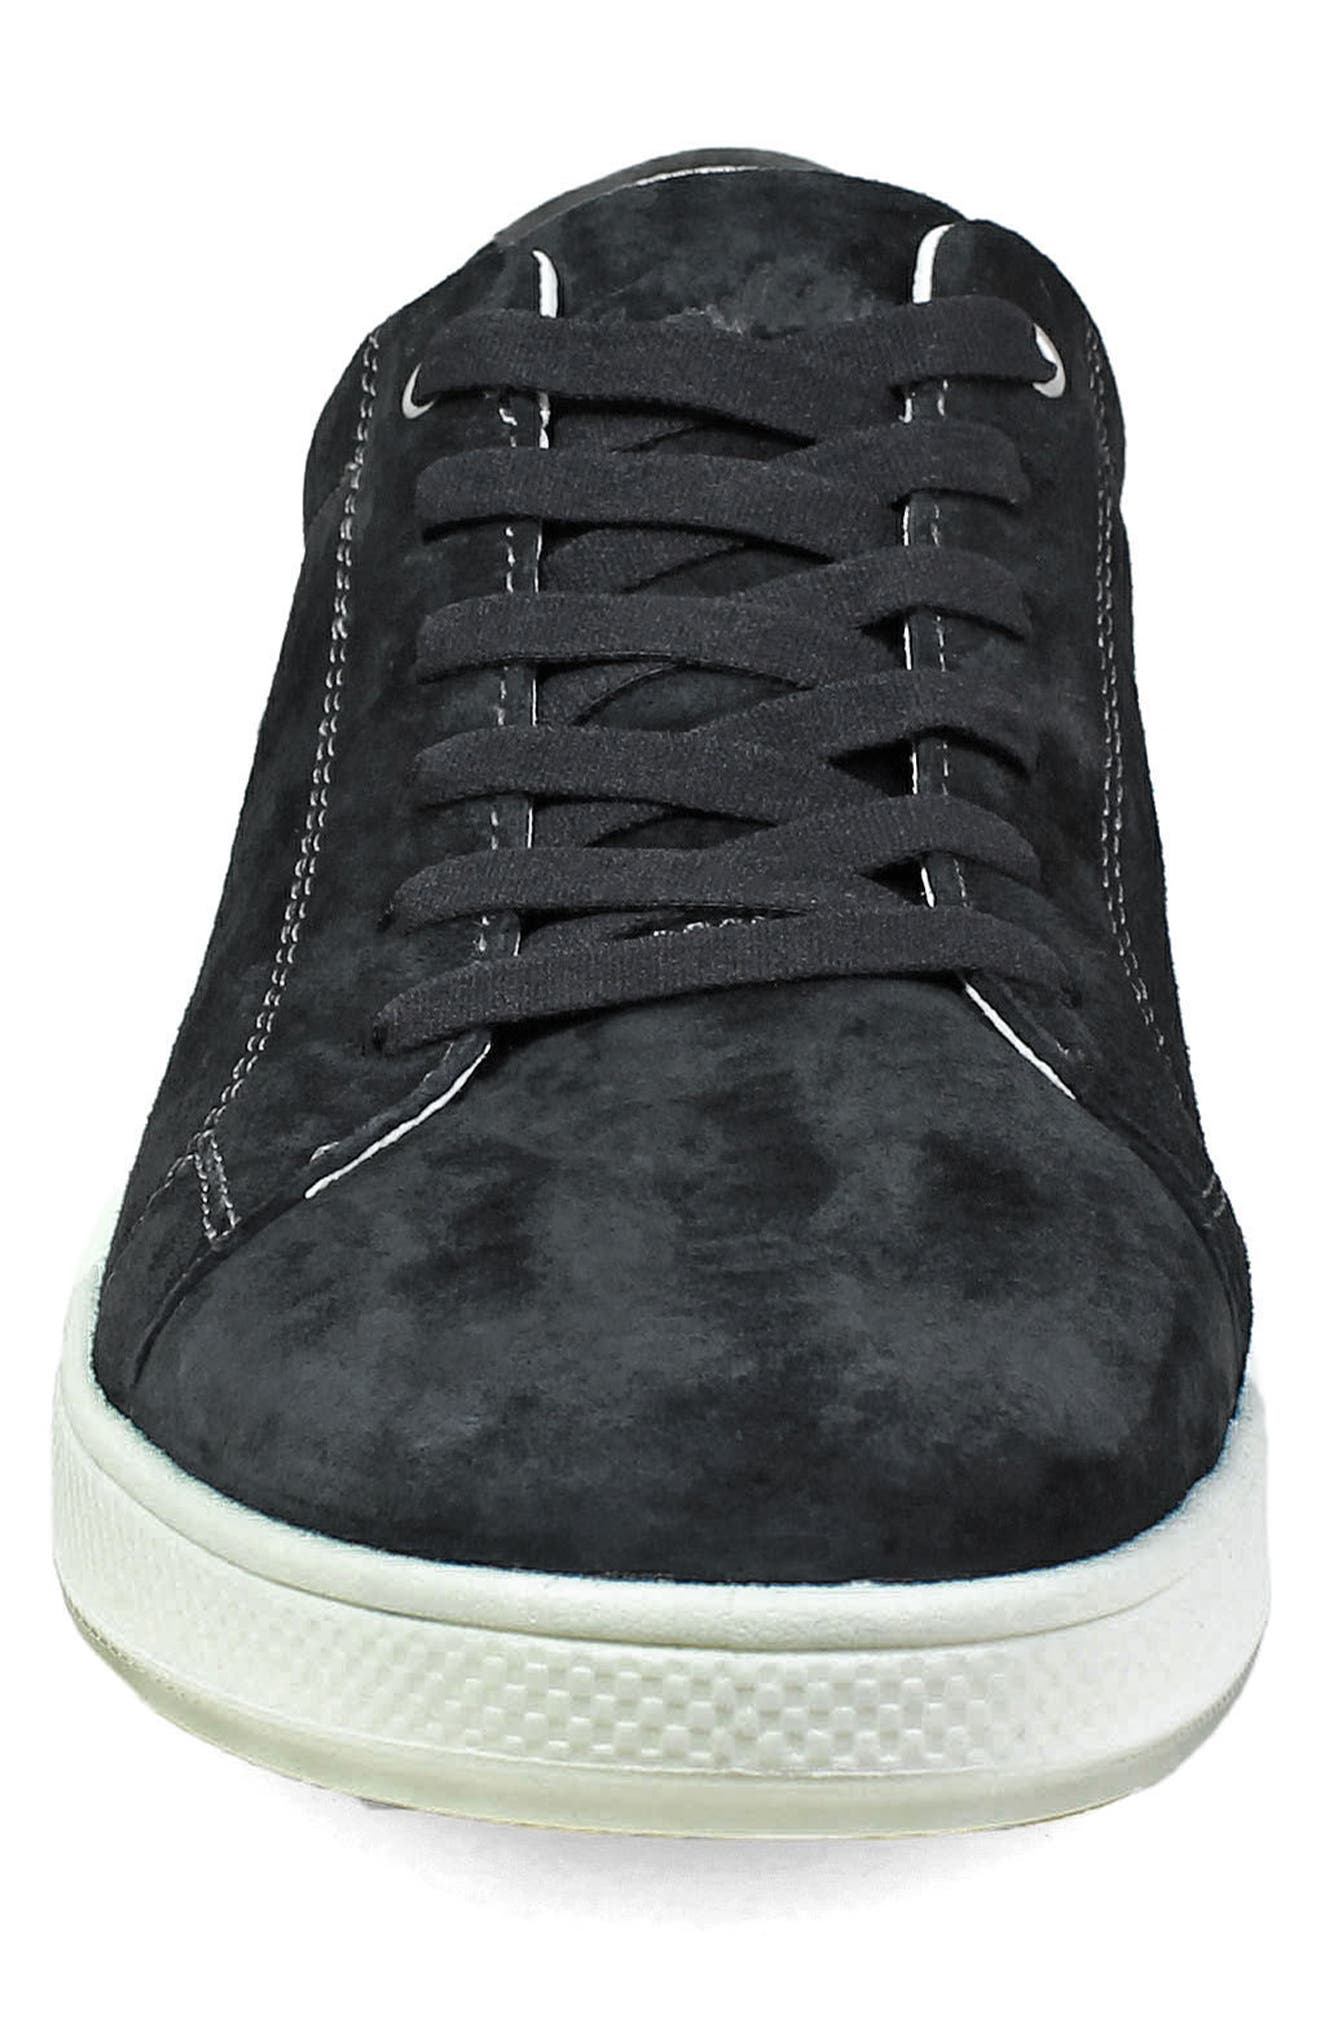 Edge Low Top Sneaker,                             Alternate thumbnail 4, color,                             BLACK NUBUCK